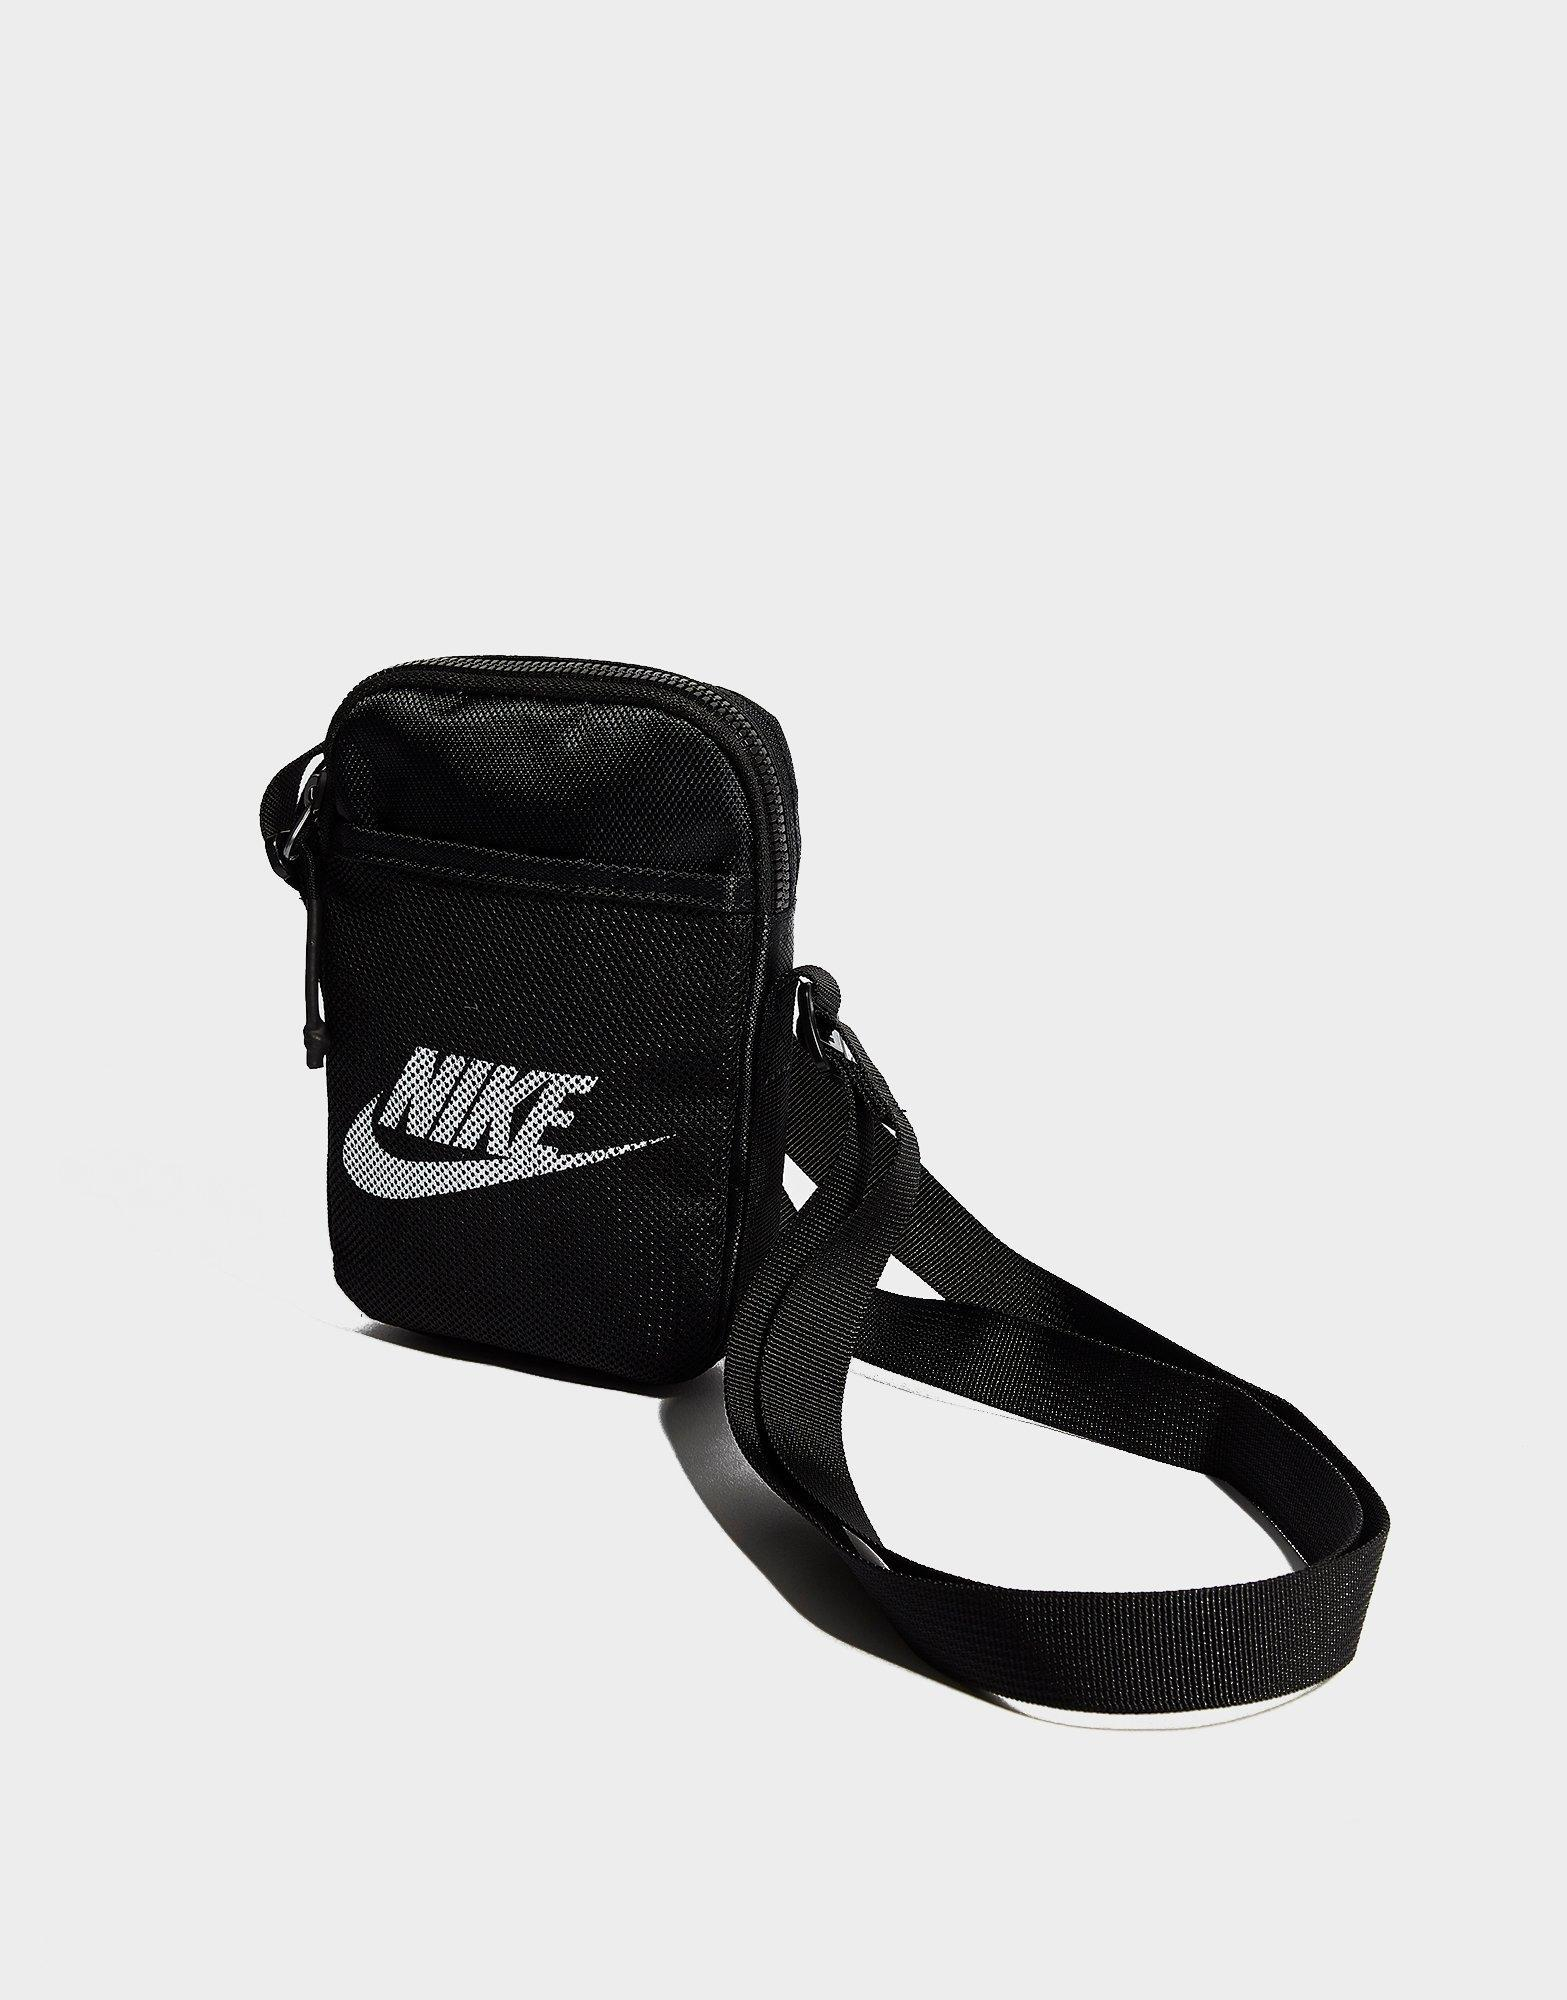 e051bafb38 Lyst - Nike Mini Bag in Black for Men